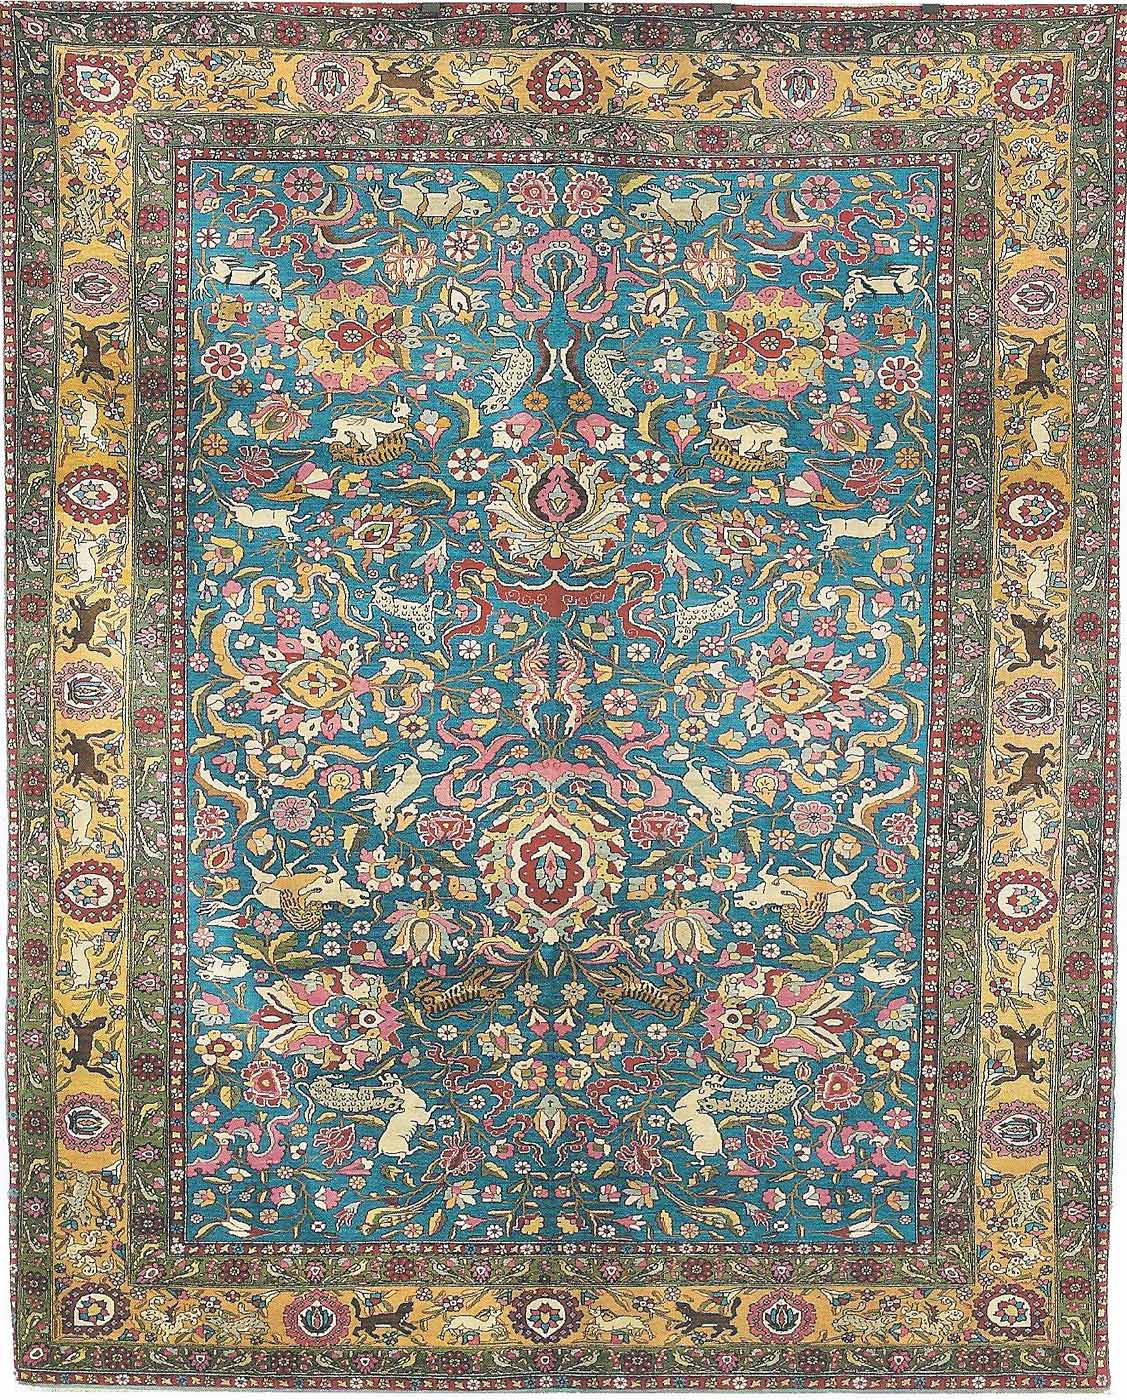 Persian Rugs Price Guide Tehran Rug Form Persia